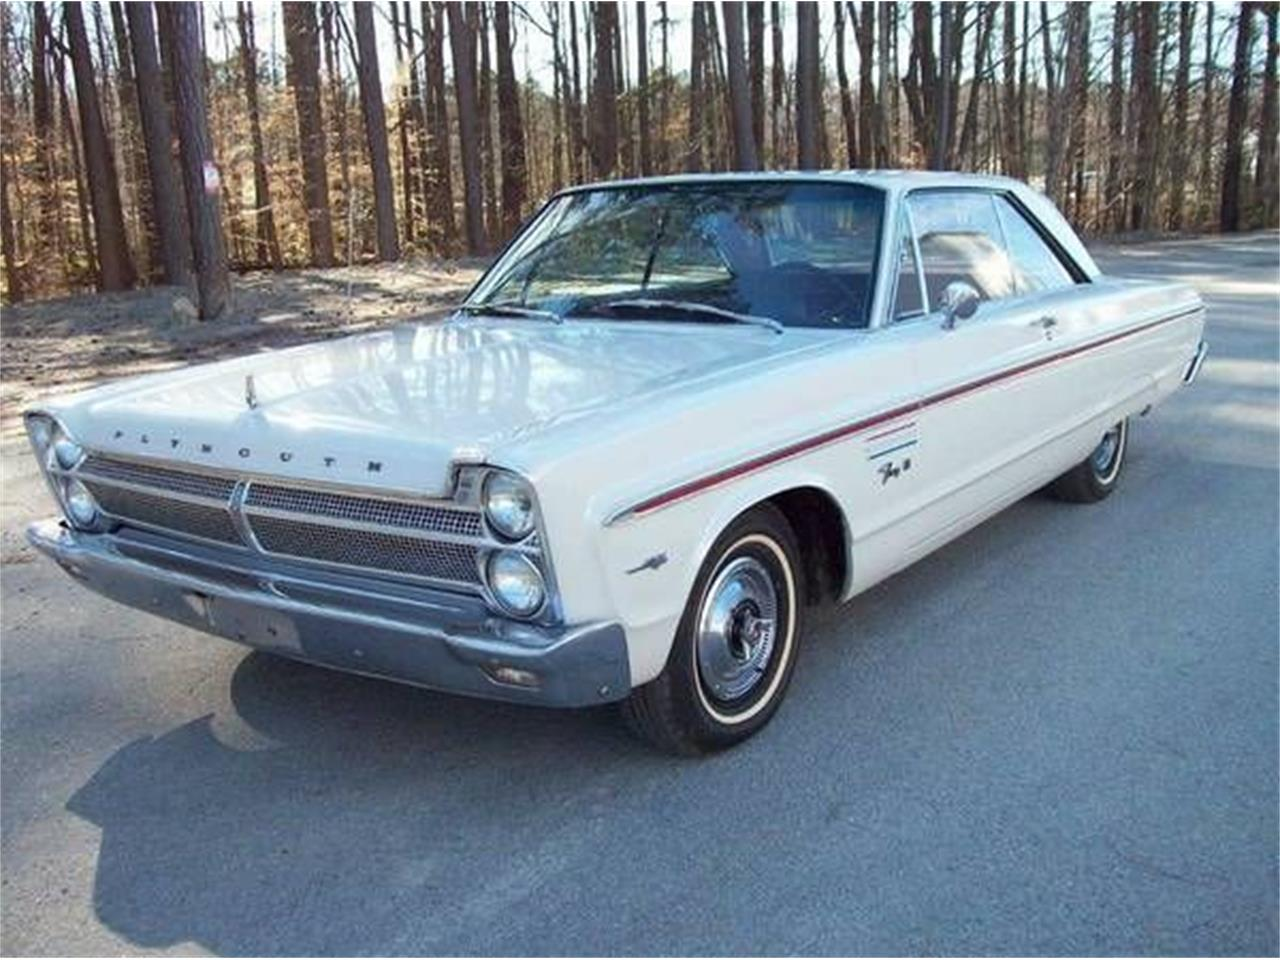 Large Picture of '65 Fury III - $22,495.00 Offered by Classic Car Deals - OHGN